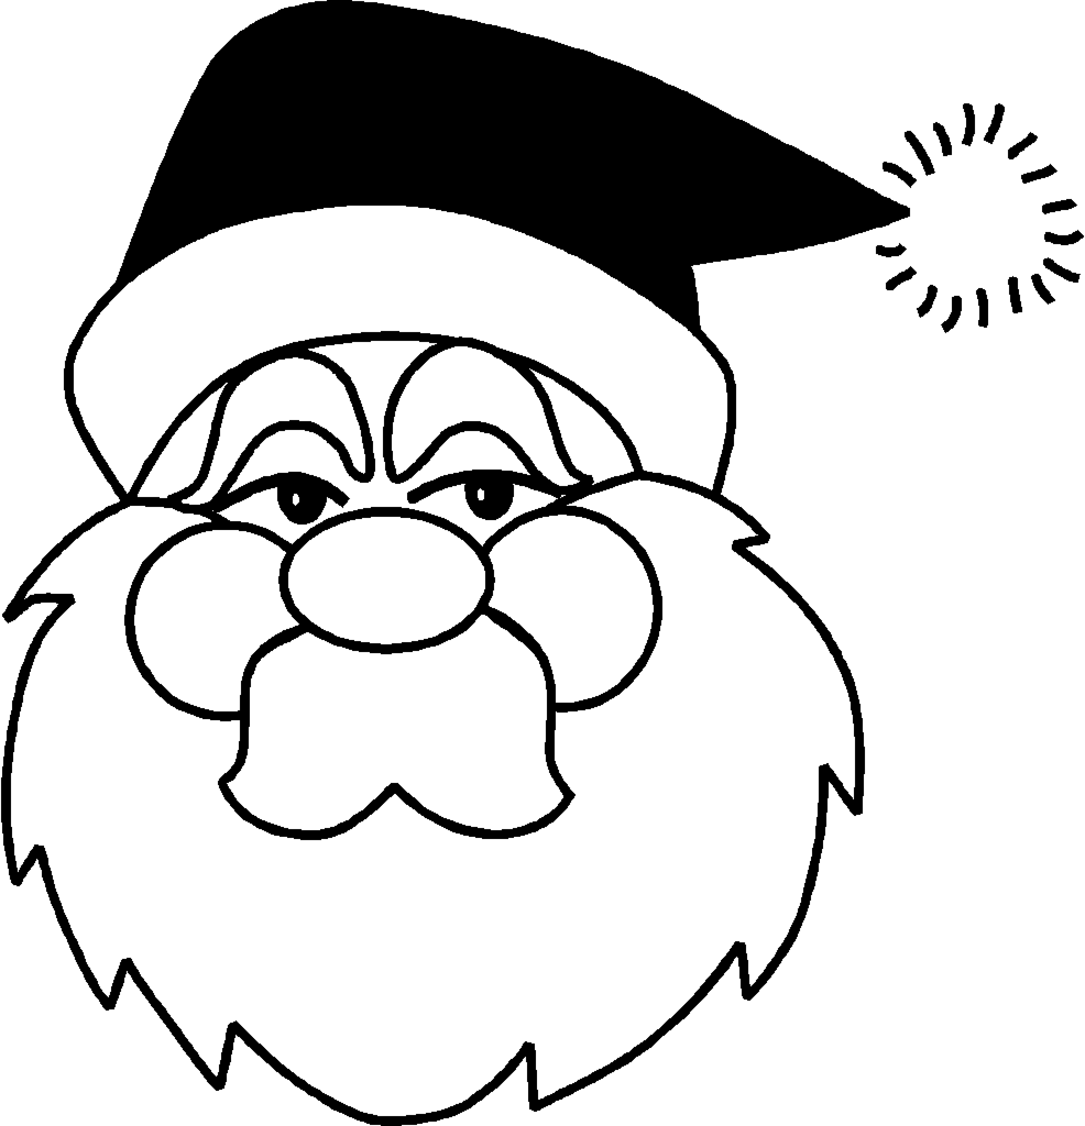 adult christmas coloring pages printable - Bing images | design ...